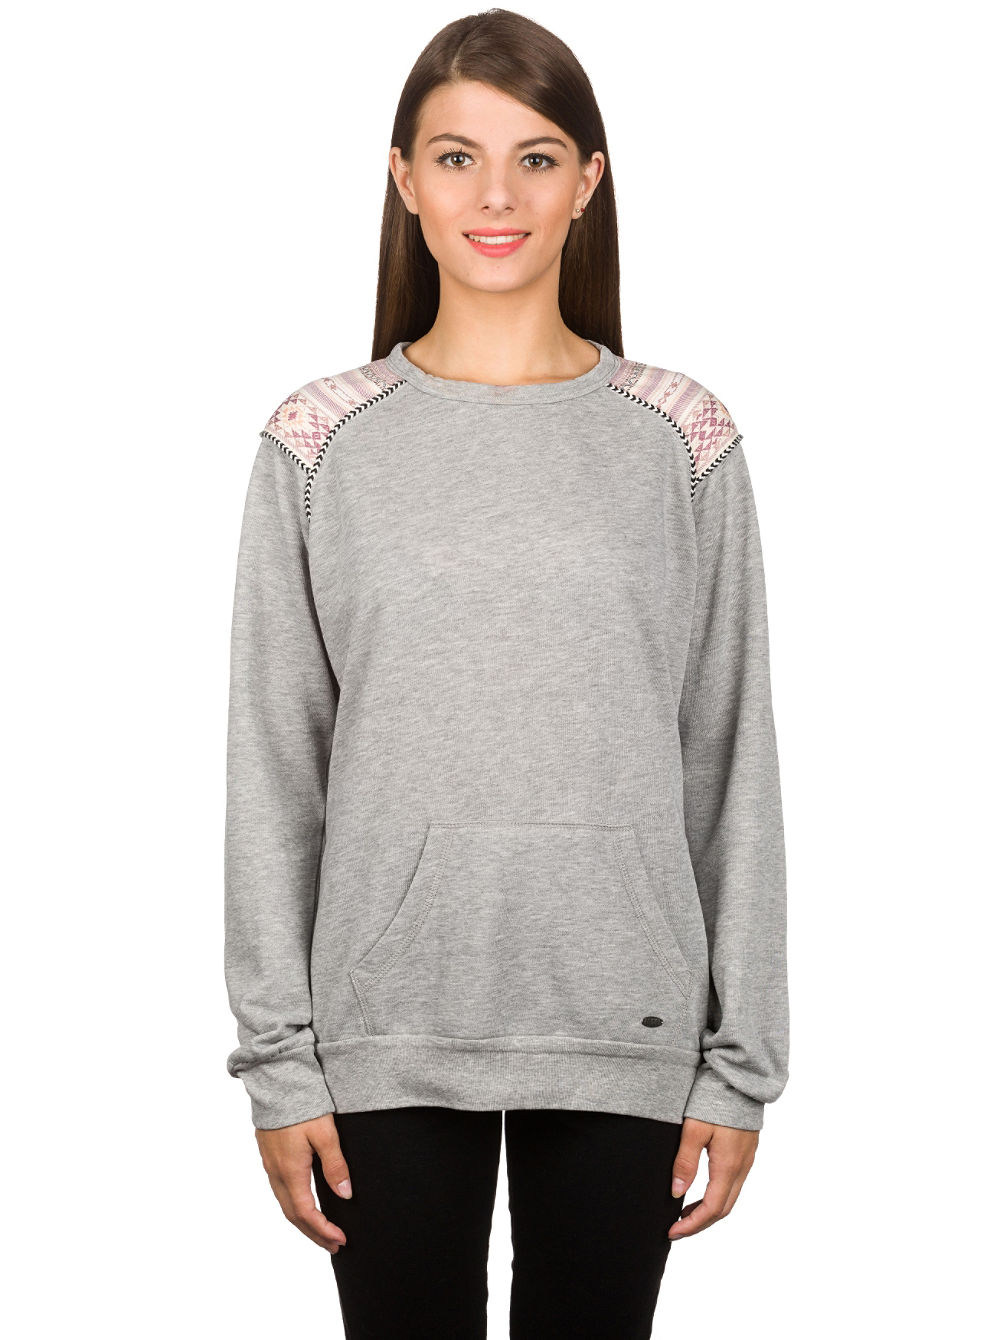 Buy Rip Curl Calama Fleece Sweater online at blue-tomato.com